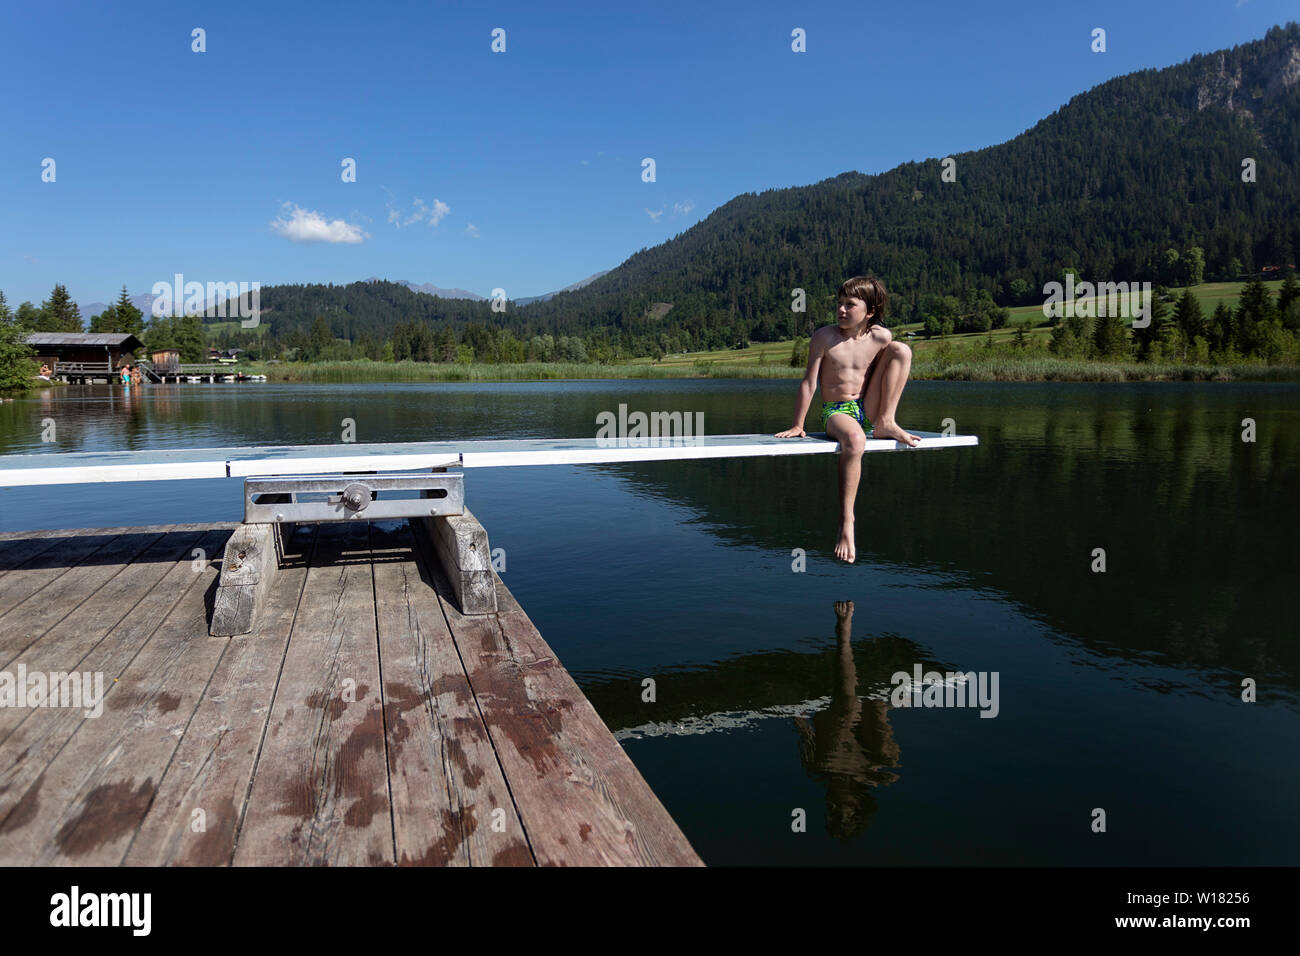 Young boy in swimming suit sitting on diving board on lake Weissensee in Austria - Stock Image